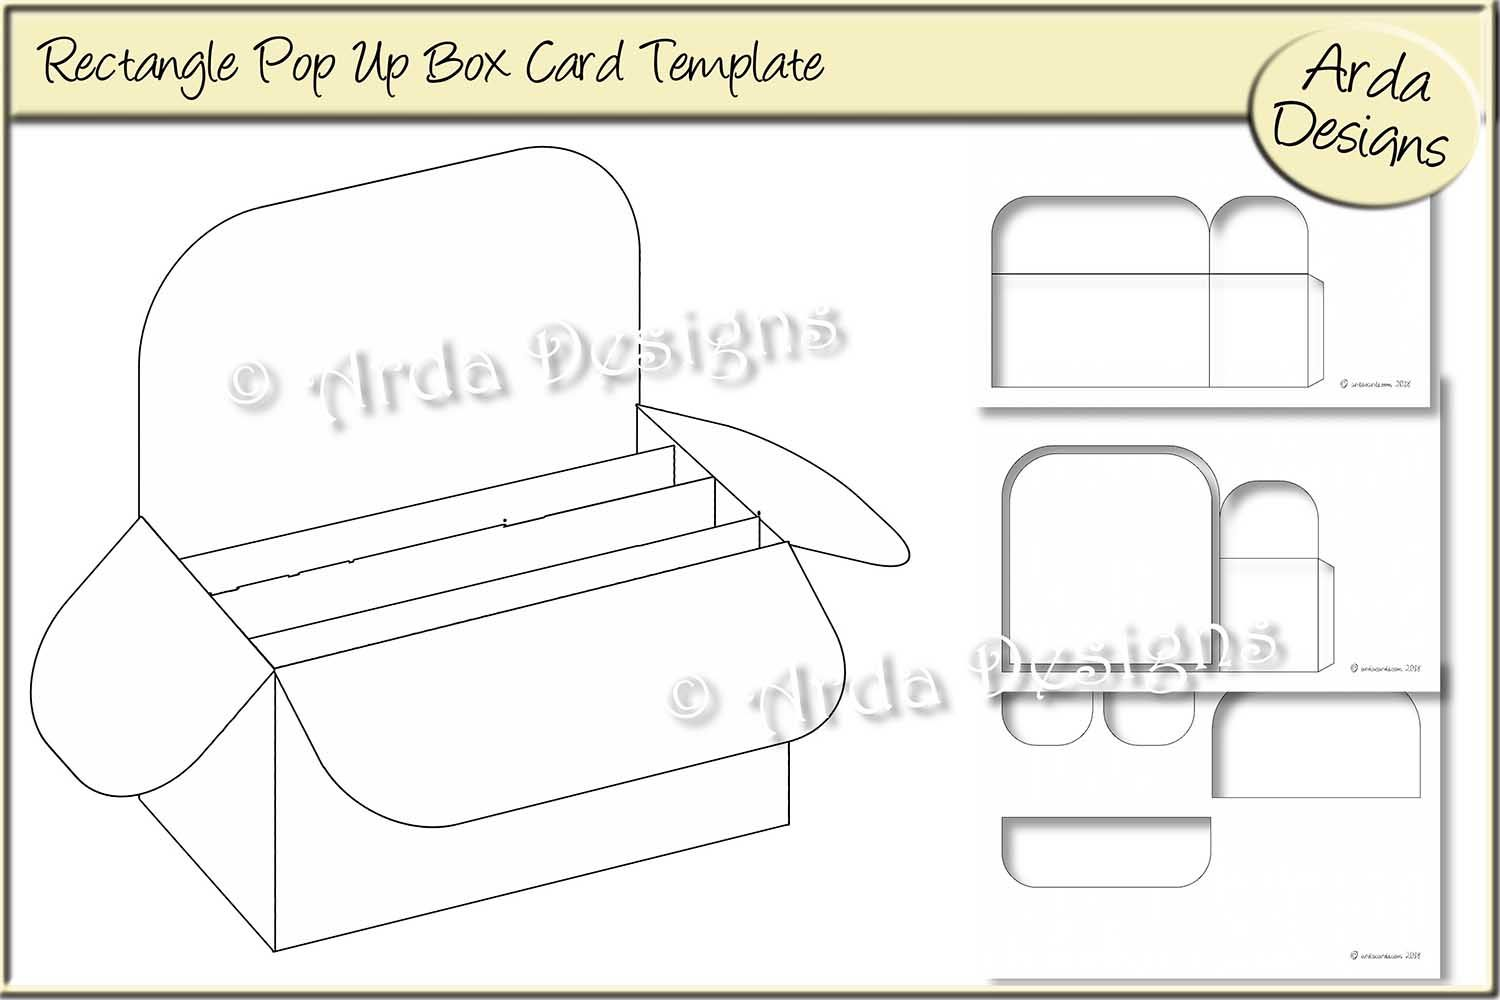 Rectangle Pop Up Box Card Cu Template Intended For Card Box Template Generator Professional Template Ideas Pop Up Box Cards Pop Up Card Templates Card Box